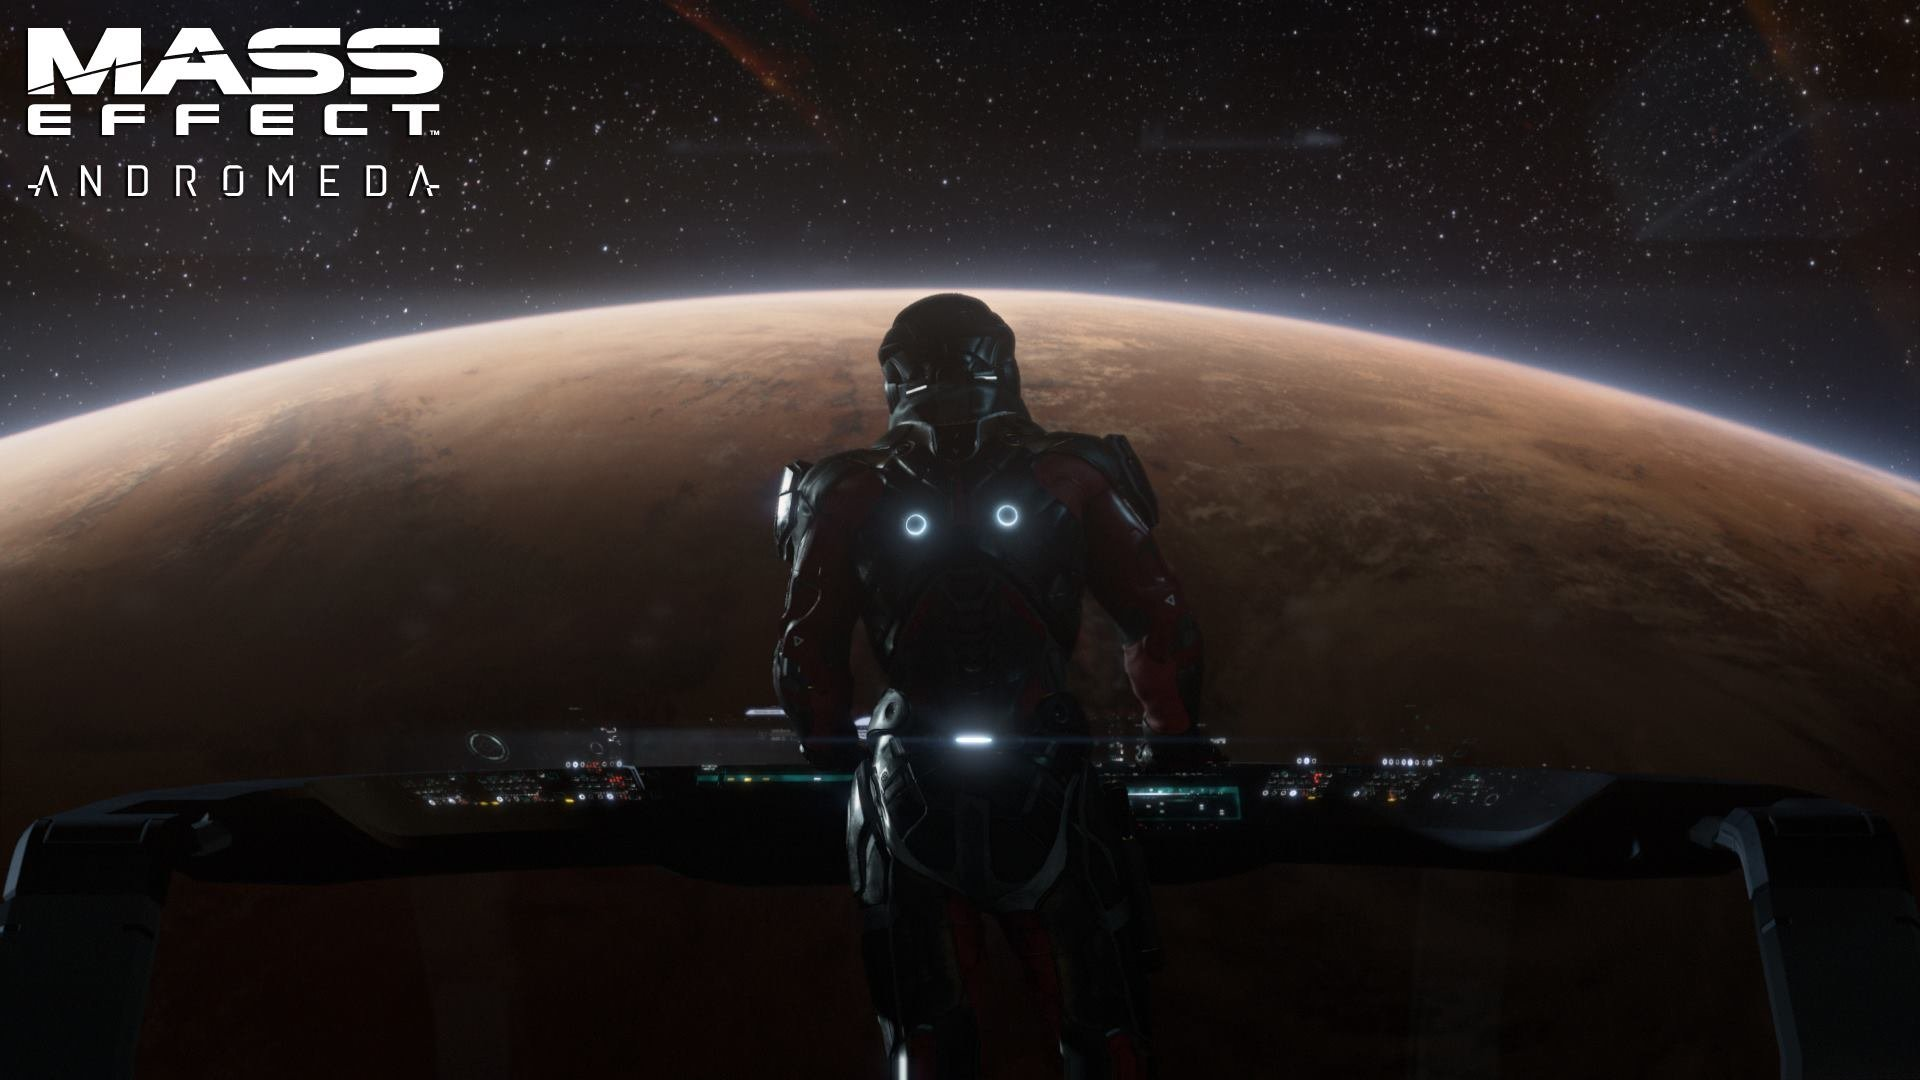 Andromeda Galaxy Wallpaper Iphone Mass Effect Andromeda Full Hd Bakgrund And Bakgrund